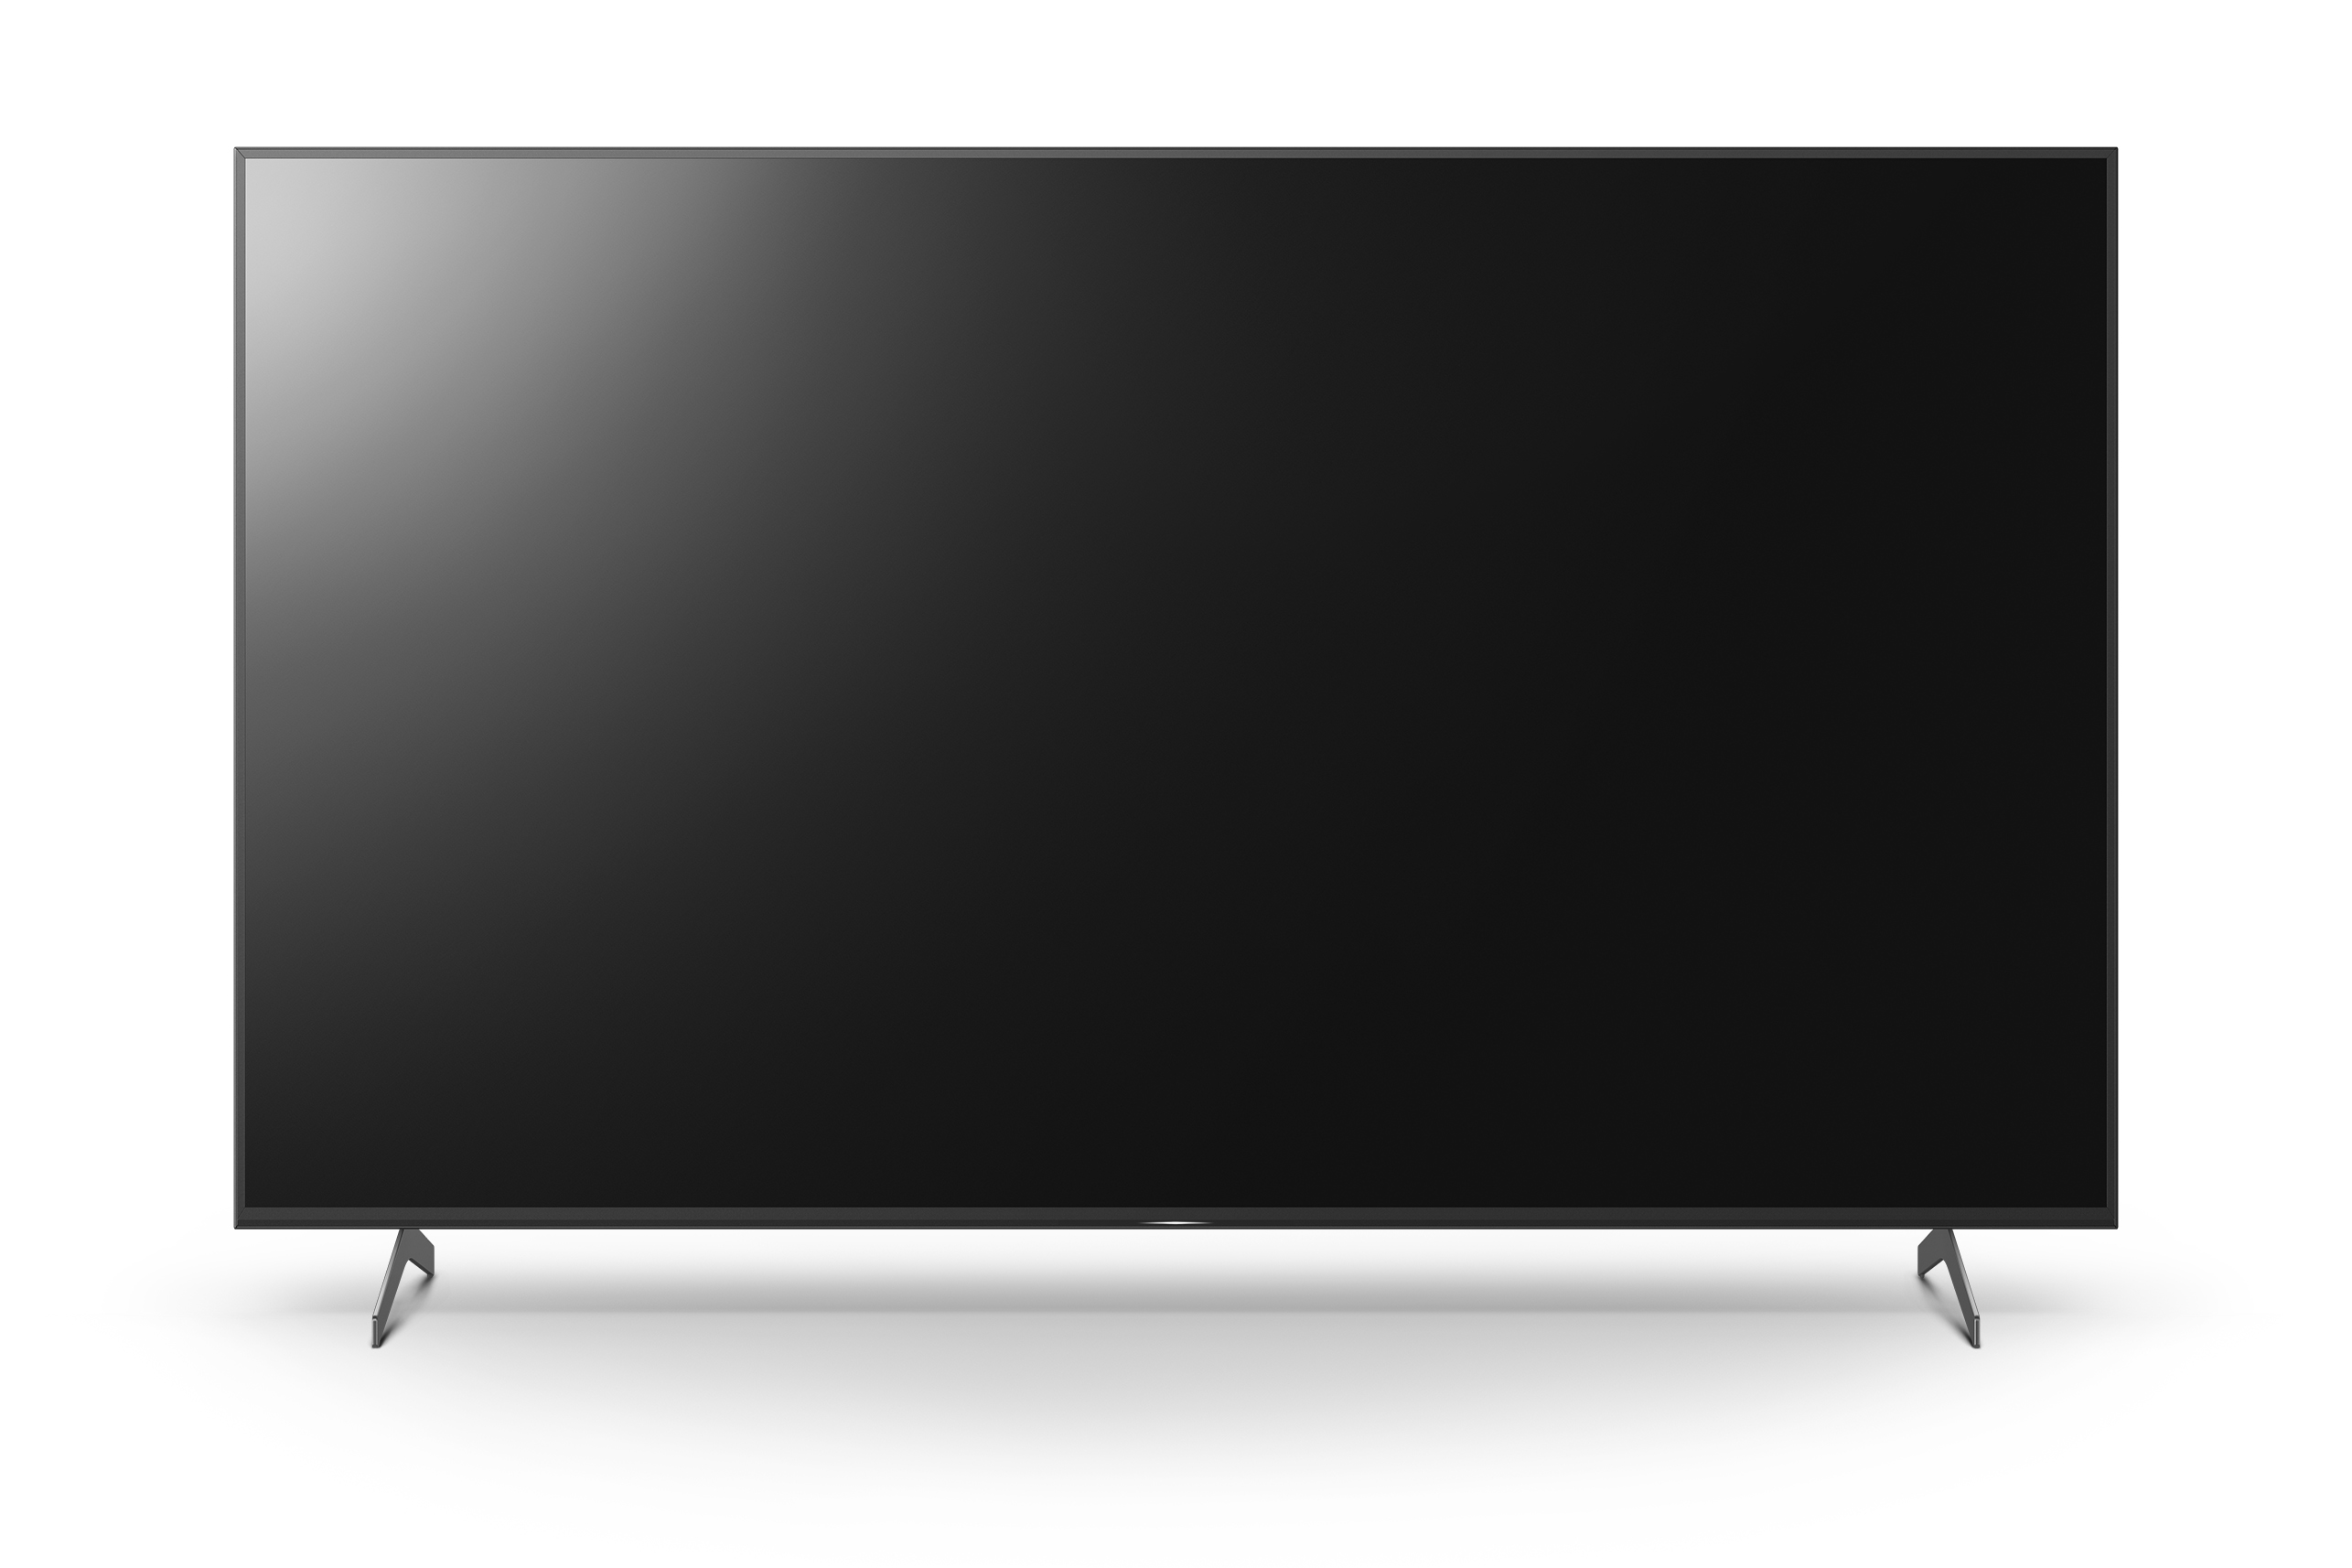 Sony Unveils Redesigned BRAVIA 4K HDR BZ40H Series of Professional Displays with Enhanced Capabilities and Performance